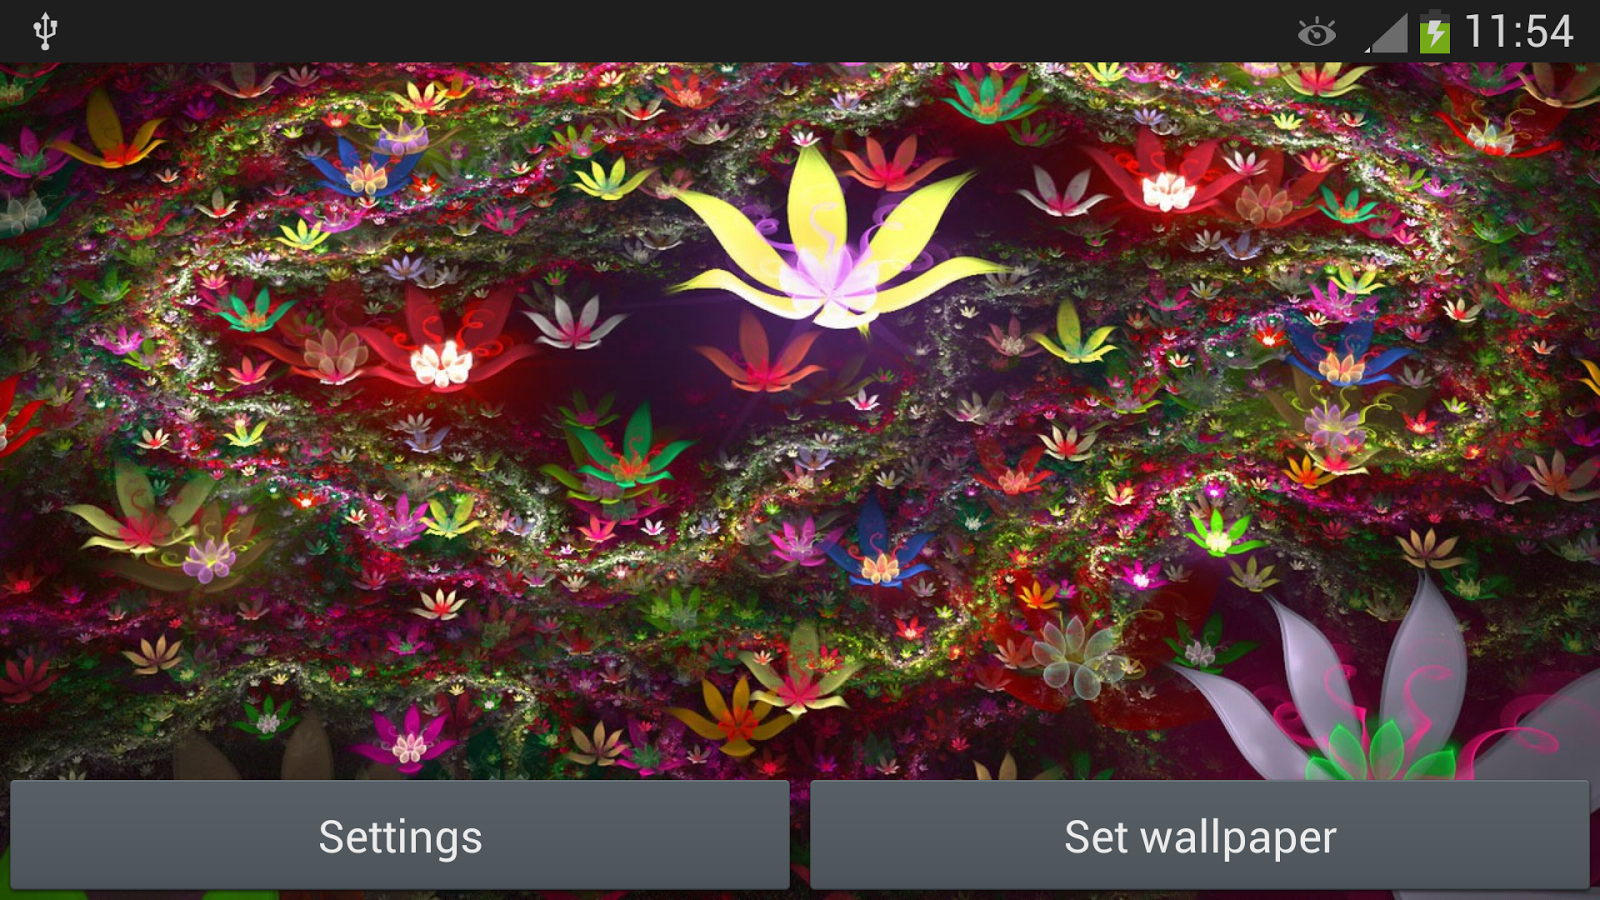 download koi live wallpaper full version apk free download in high